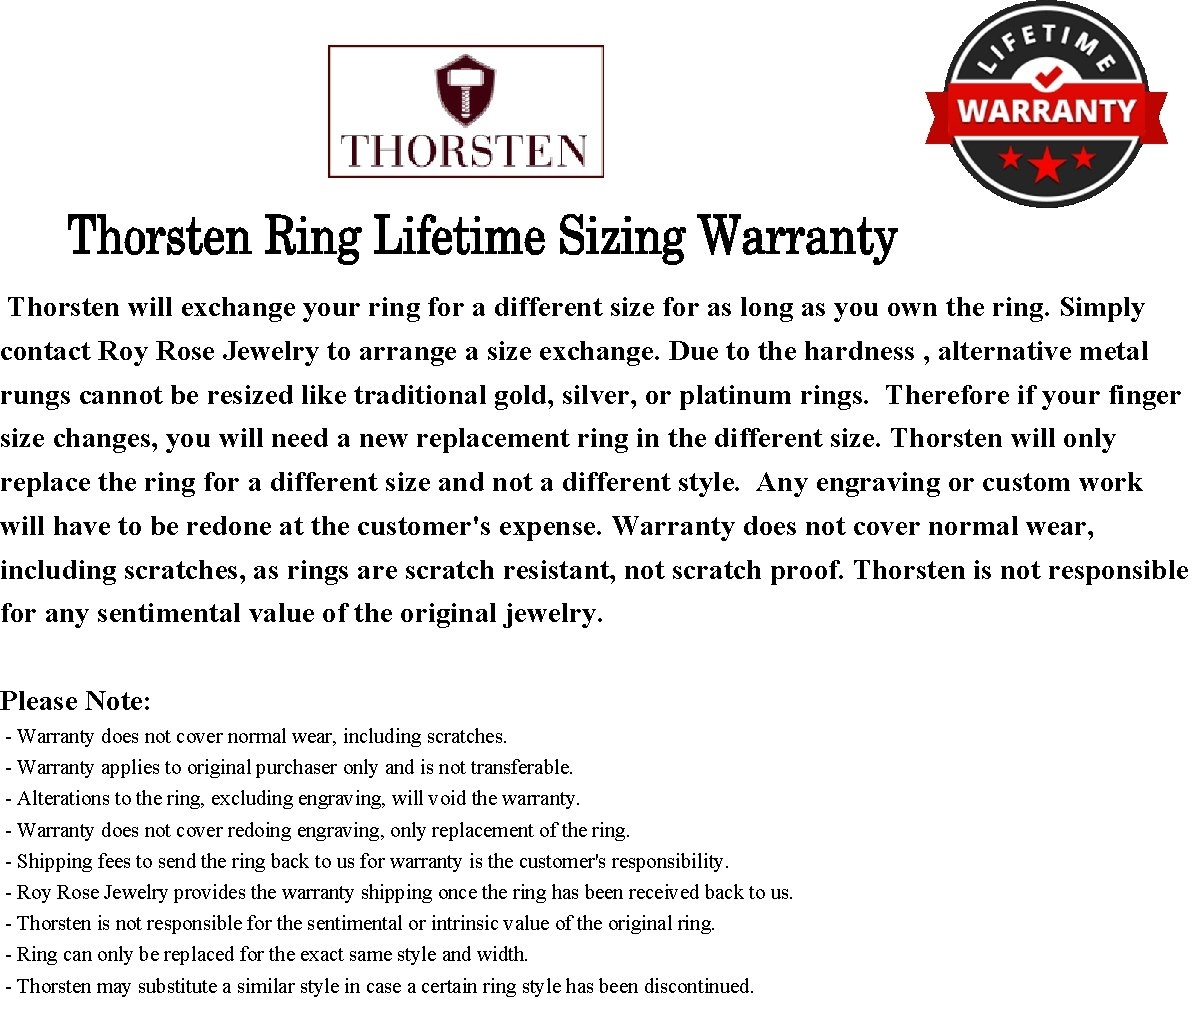 Thorsten Maximus Tungsten Carbide Wedding Band Ring with High Tech Black Carbon Fiber Inlay Polished Edges 8mm Width from Roy Rose Jewelry Size 9 by Thorsten